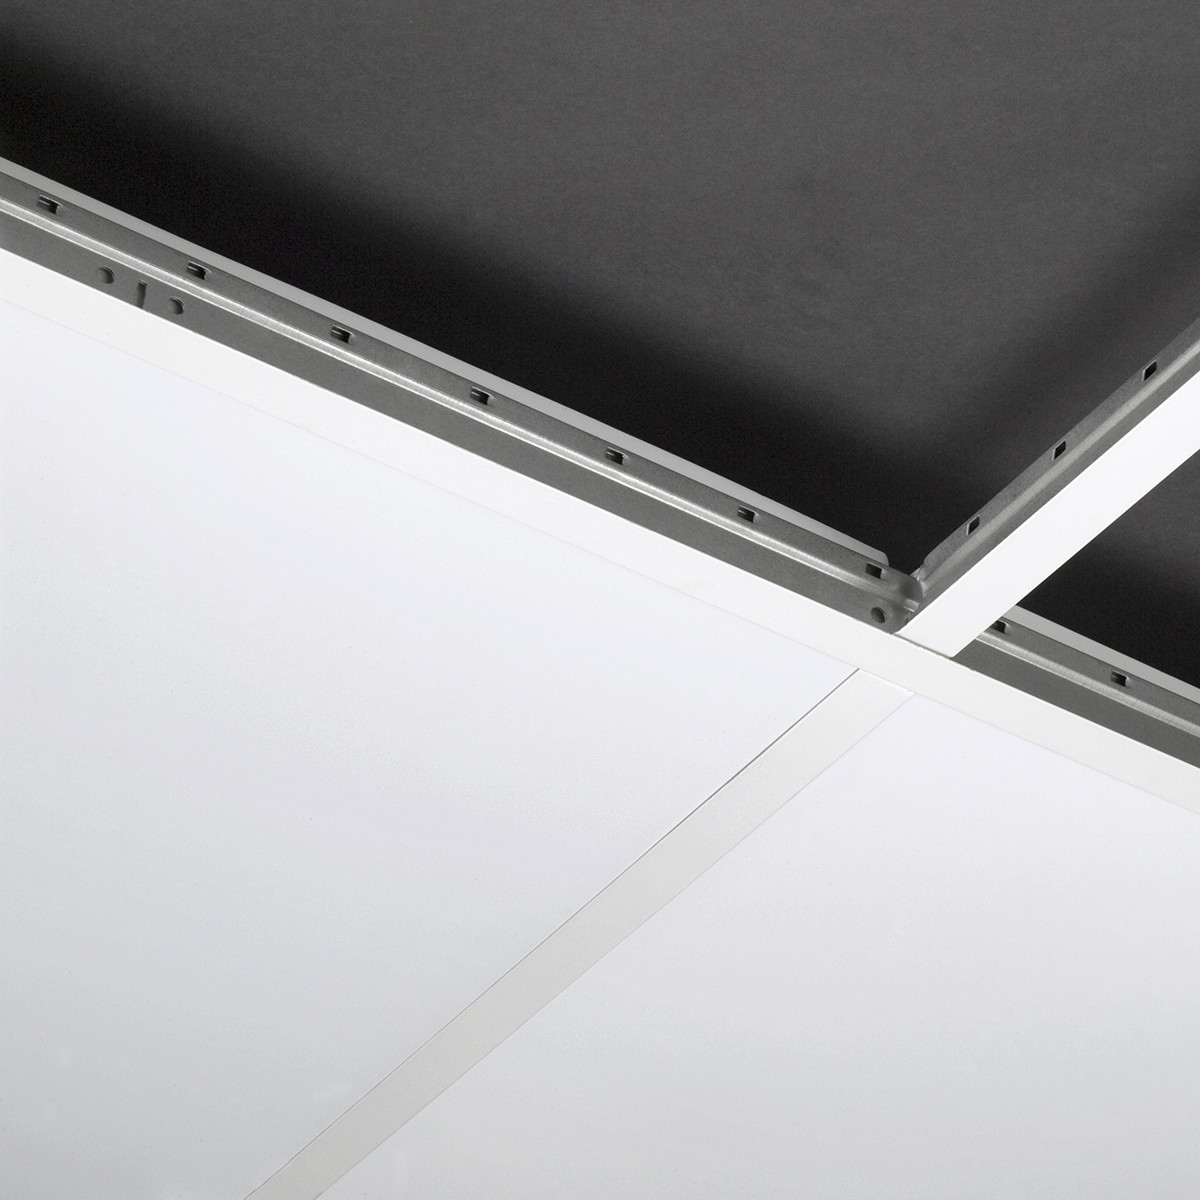 Sonex clean acoustic ceiling tile acoustical solutions sonex clean acoustic ceiling tiles by pinta acoustic inc fit into existing standard dailygadgetfo Image collections